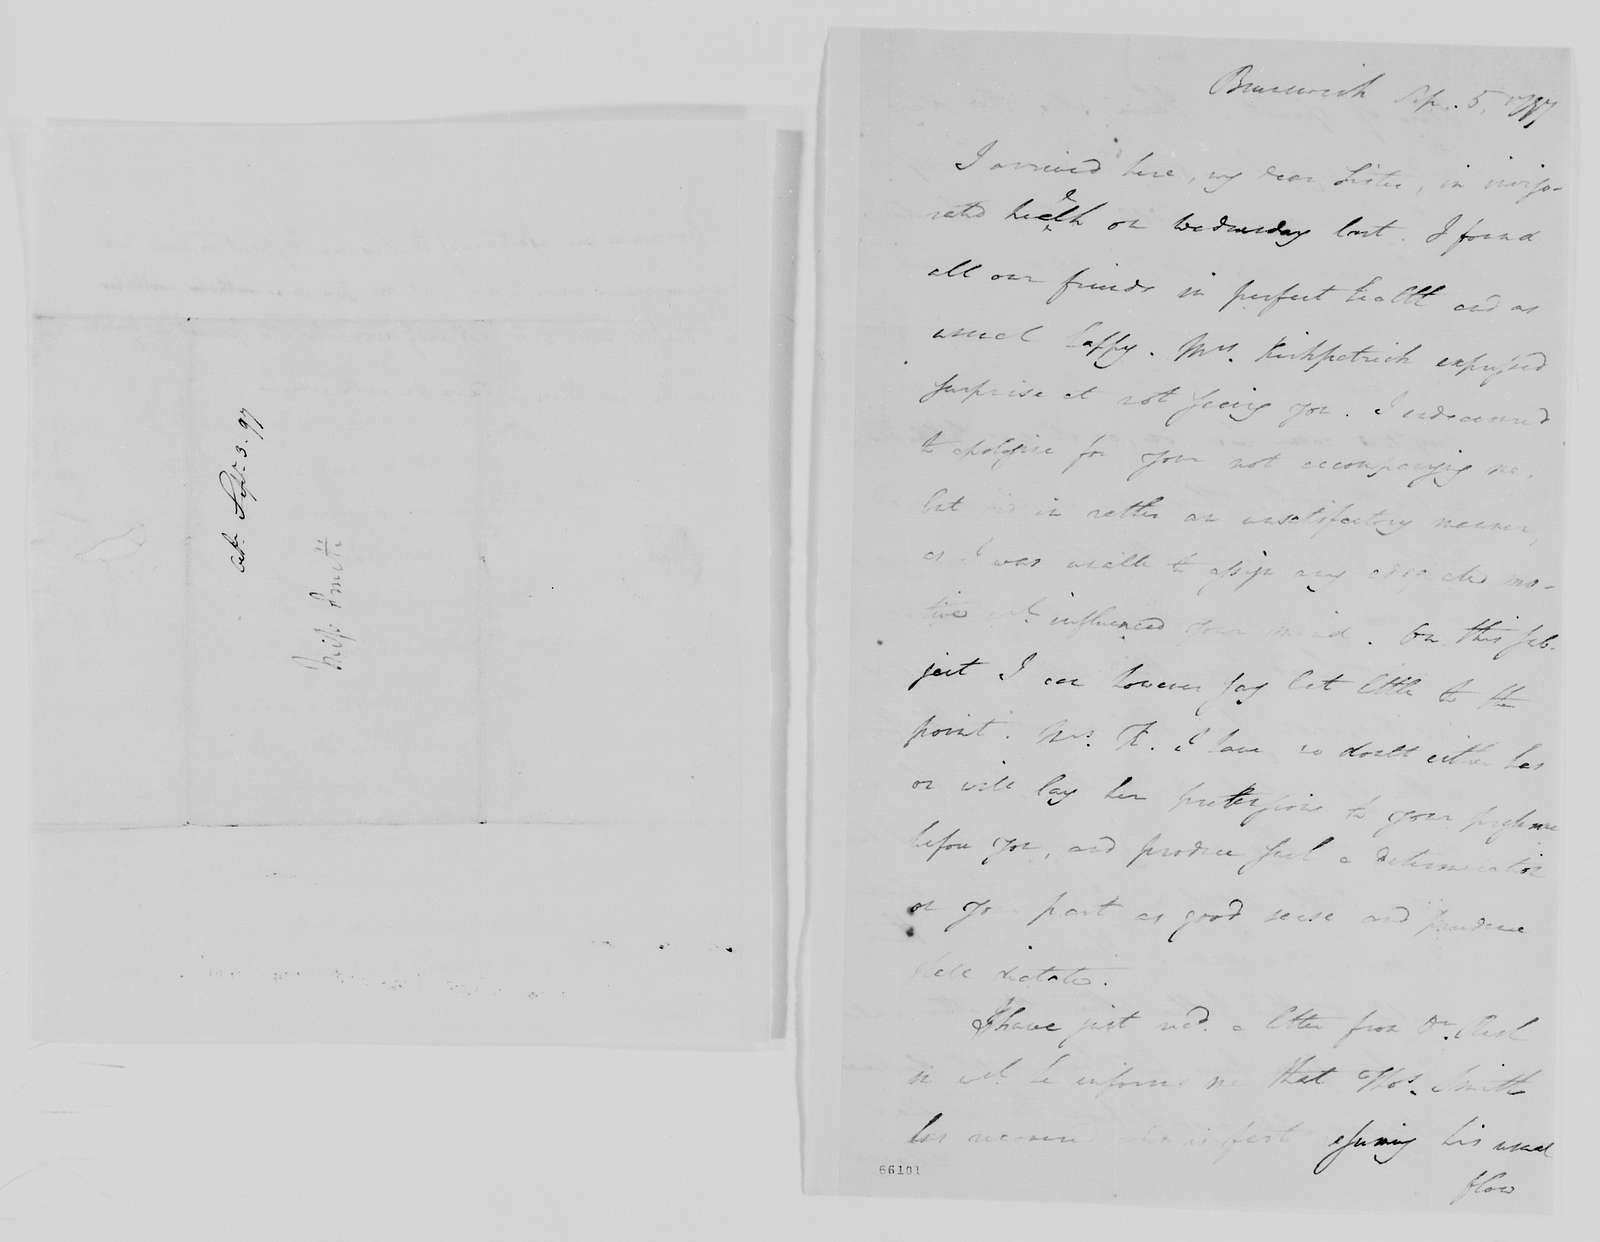 Margaret Bayard Smith Papers: Family Correspondence, 1789-1842; Smith, Mary Ann; 1797-1800